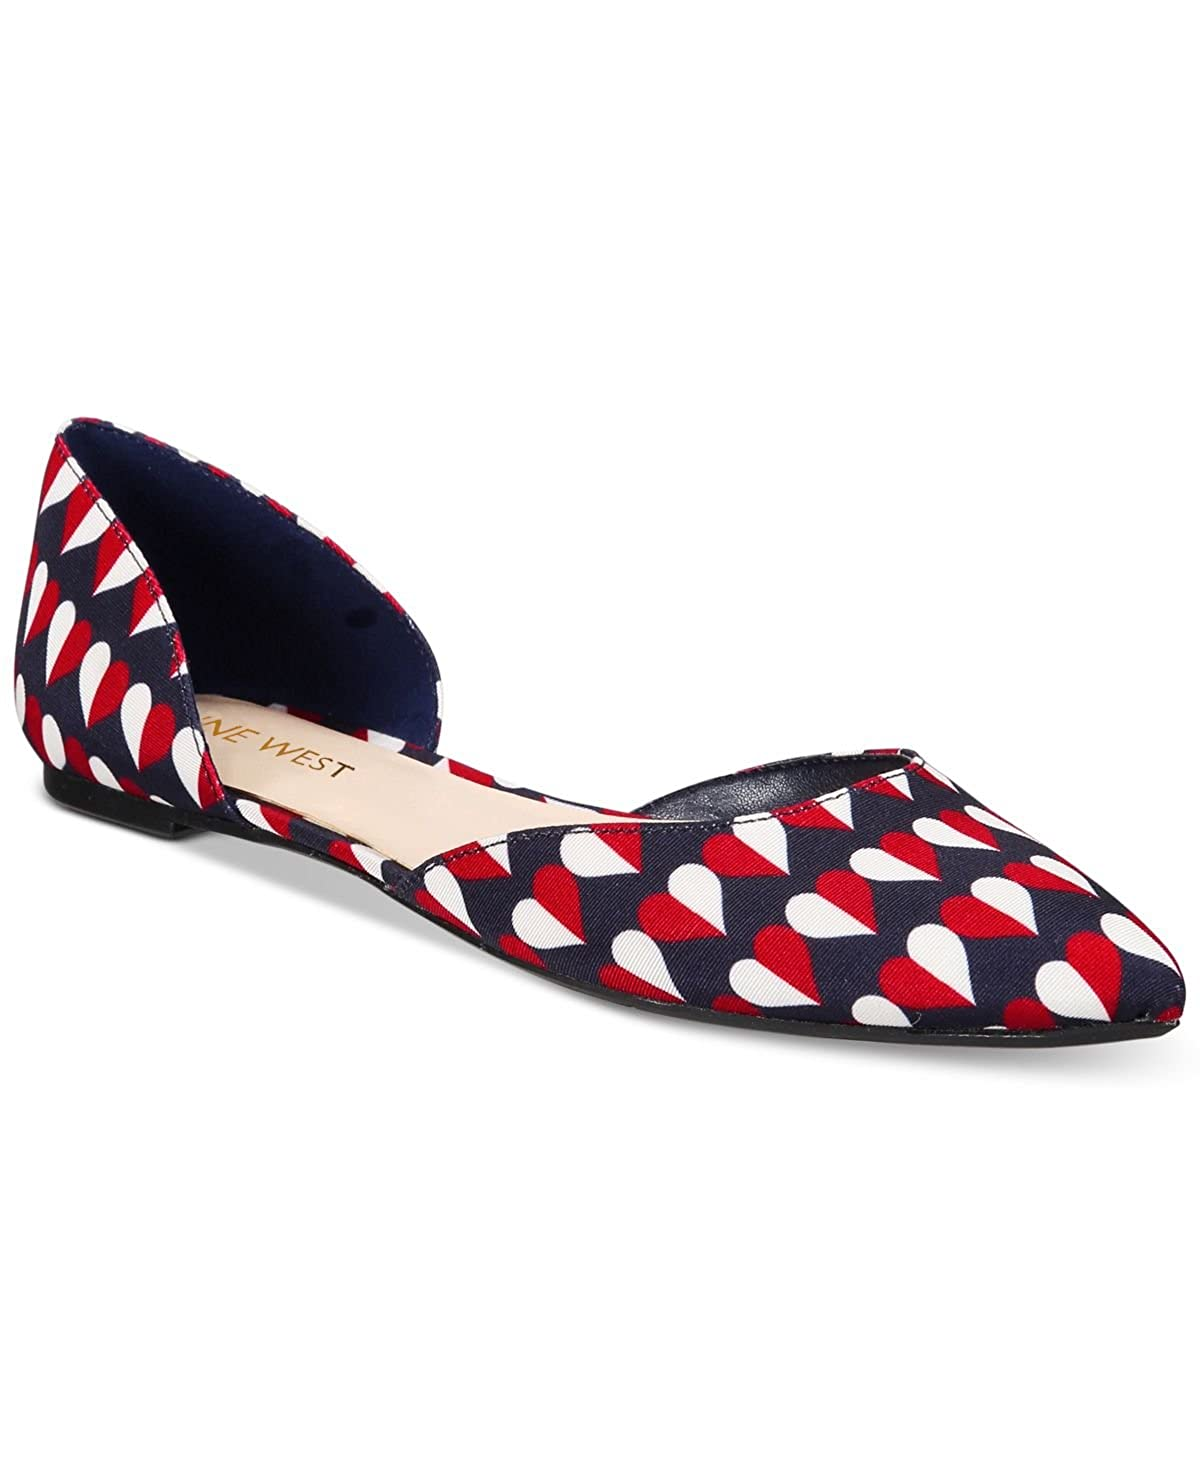 Nine West Frauen Starship Ballerinas, Ballerinas, Ballerinas, Flach Navy Multi Fabric 162b89